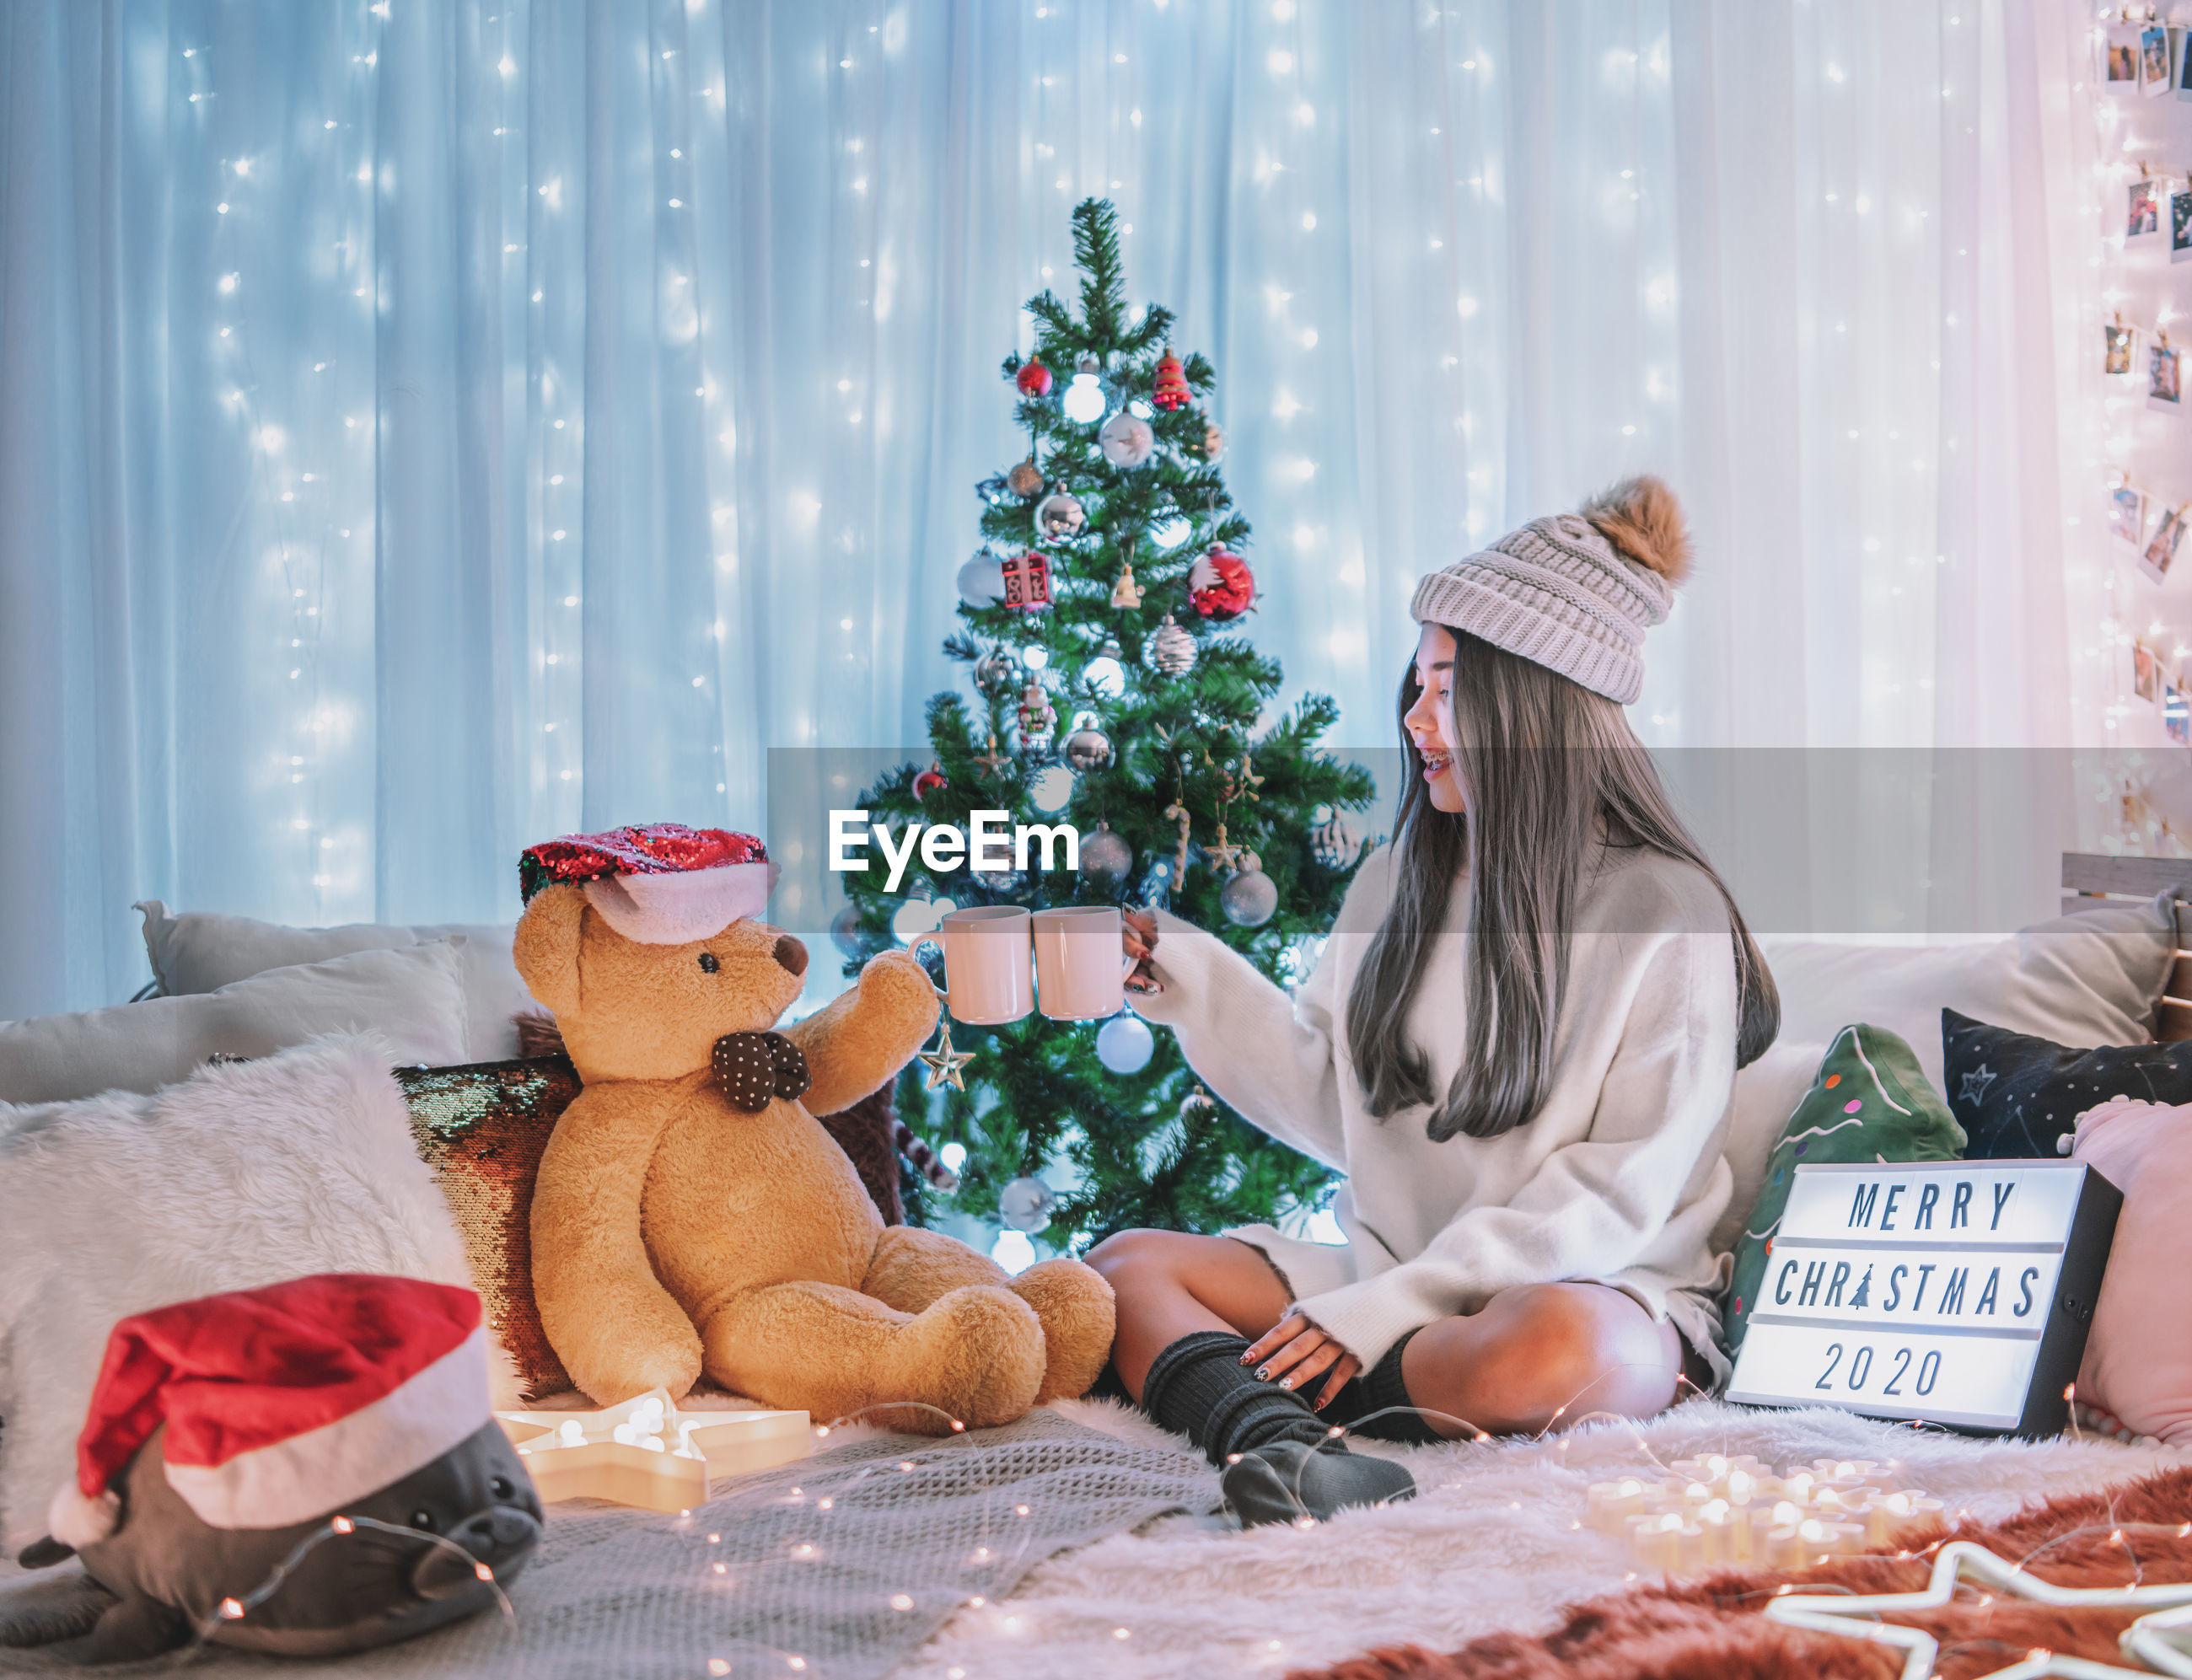 Woman having drink while sitting by teddy bear on bed at home during christmas